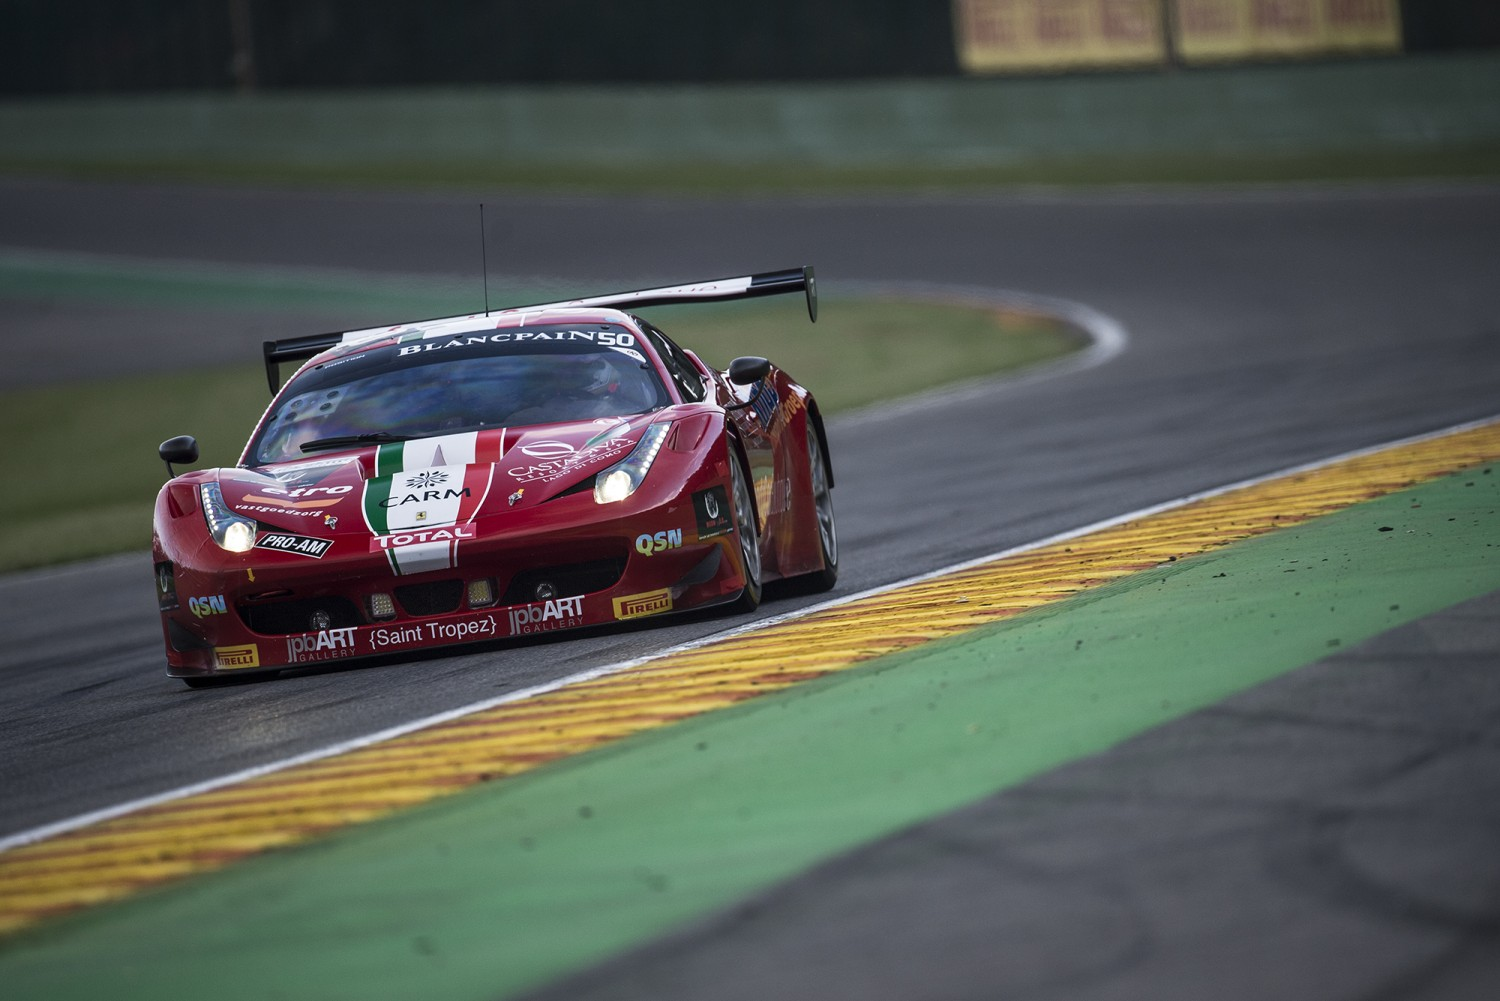 Bruni and Pier Guidi join Lémeret and Lathouras in Spa